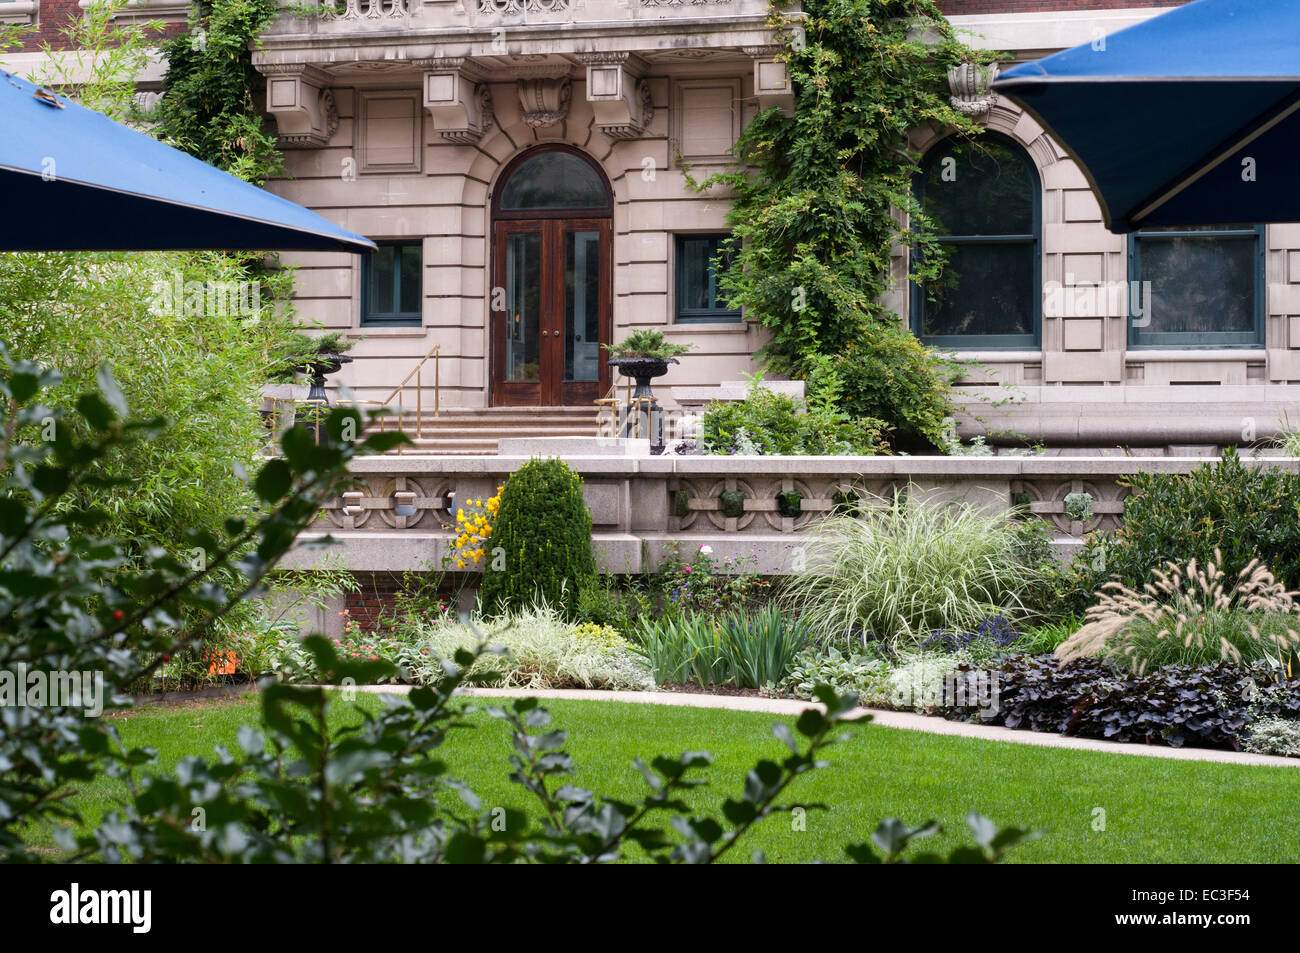 Cooper Hewitt National Design Museum. New York. USA. Cooper Hewitt, Smithsonian Design Museum is a design museum - Stock Image